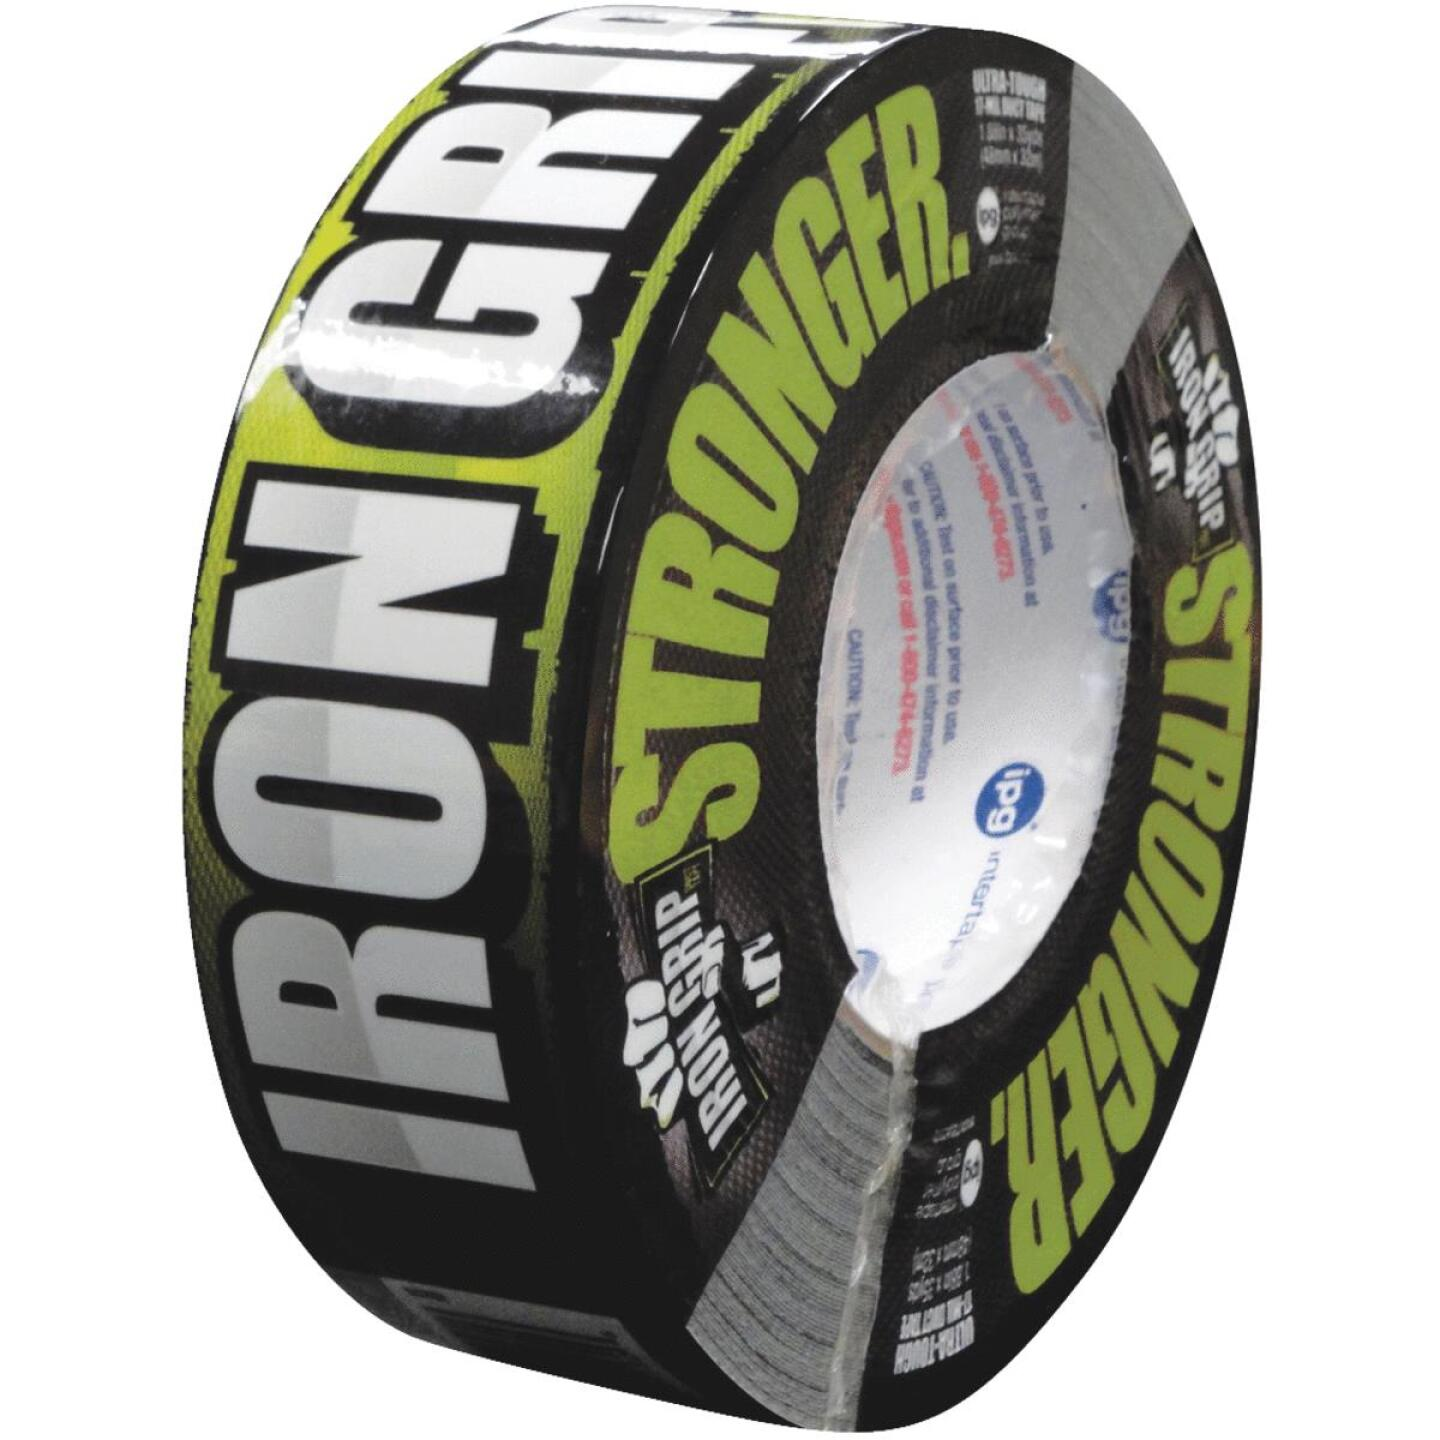 Intertape IRONGRIP 1.88 In. x 35 Yd. Duct Tape, Black Image 1